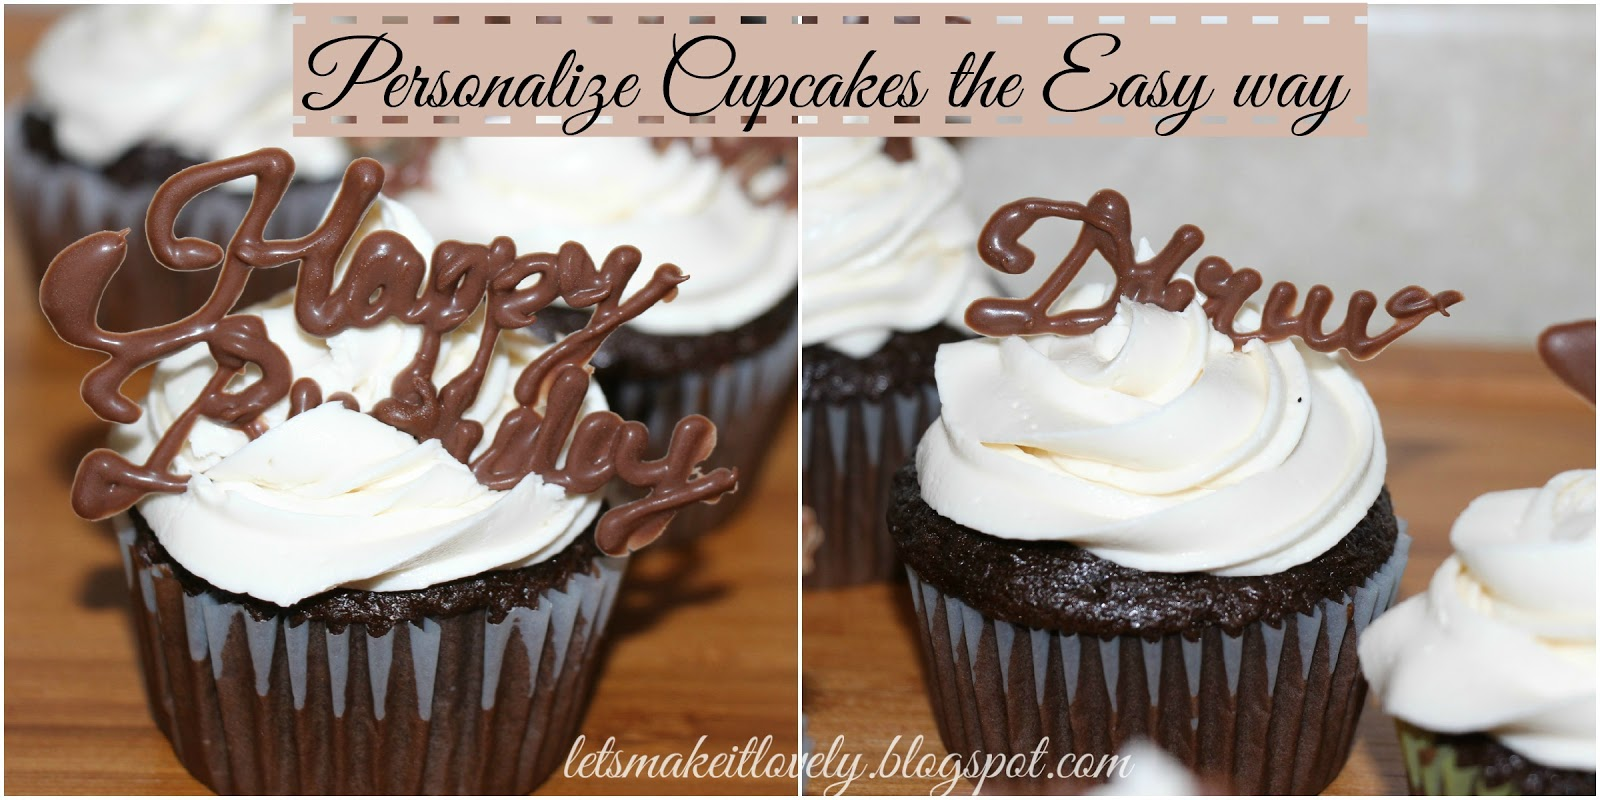 Simple way to personalize and decorate cupcakes for any occasion using chocolate. Birthday Cupcakes. Edible chocolate writings.